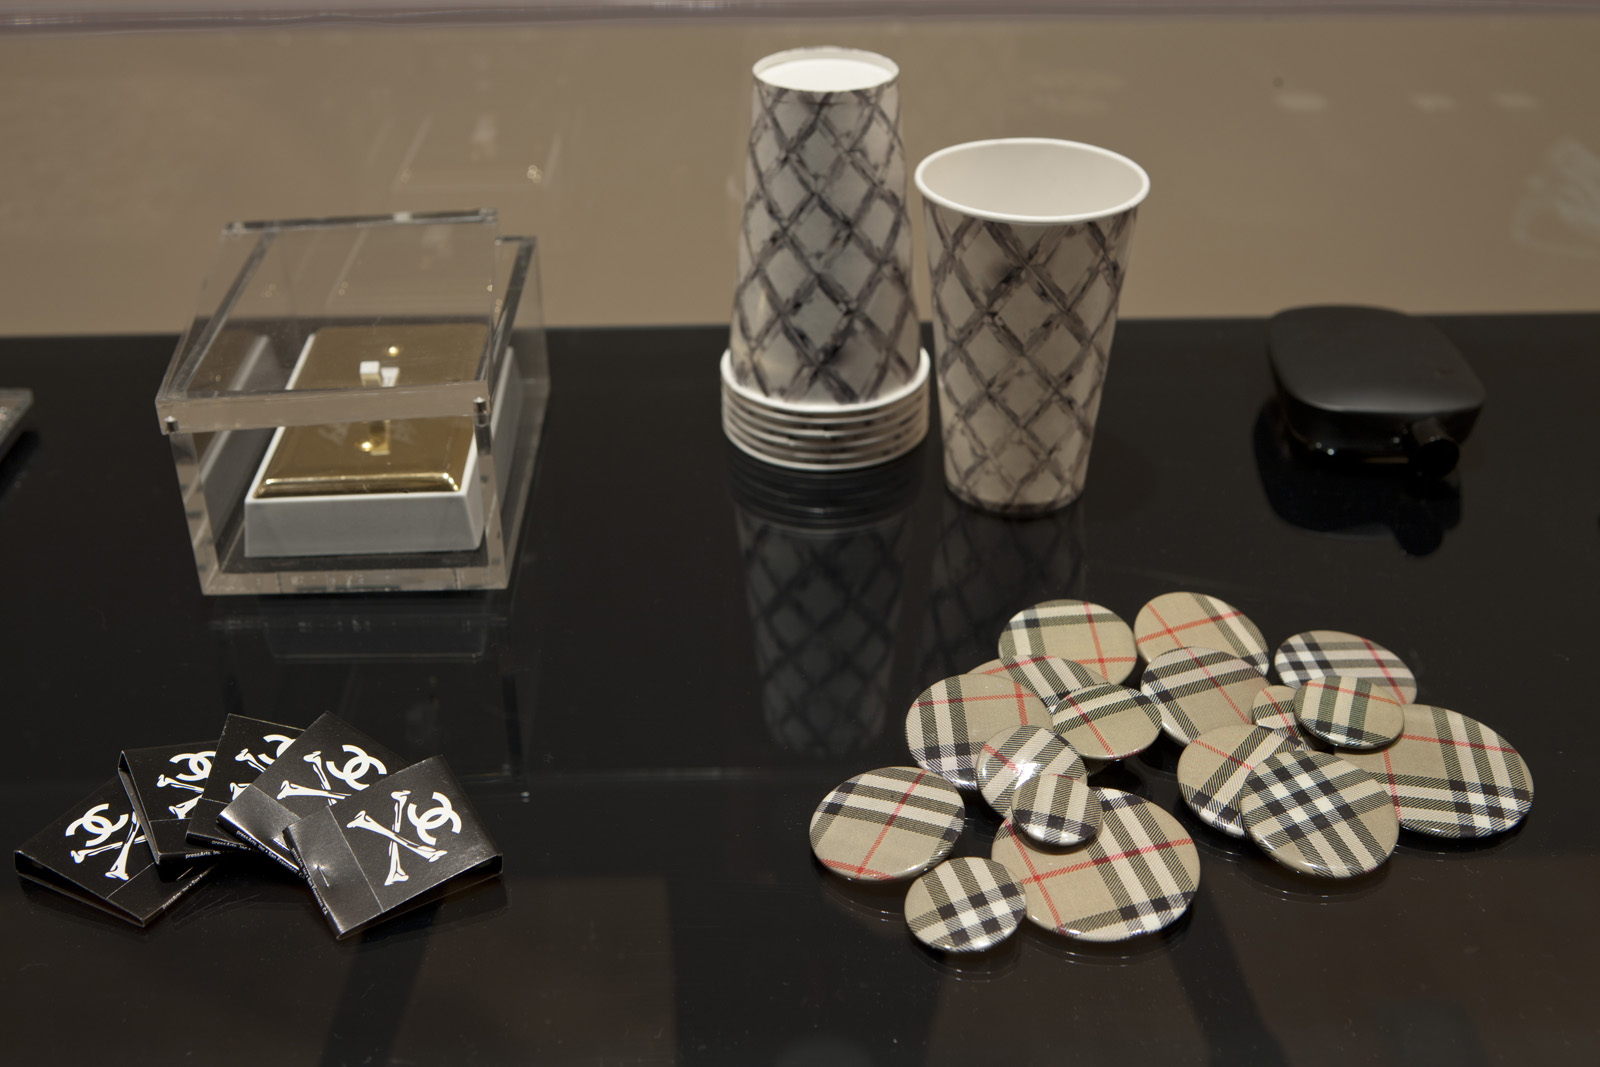 Another selection of objects on display including <i>Unauthorized Burberry Buttons</i> (1999). Burberry took to Wong's shenanigans and used the pins in one of their advertising campaigns. Photo courtesy SFMOMA.